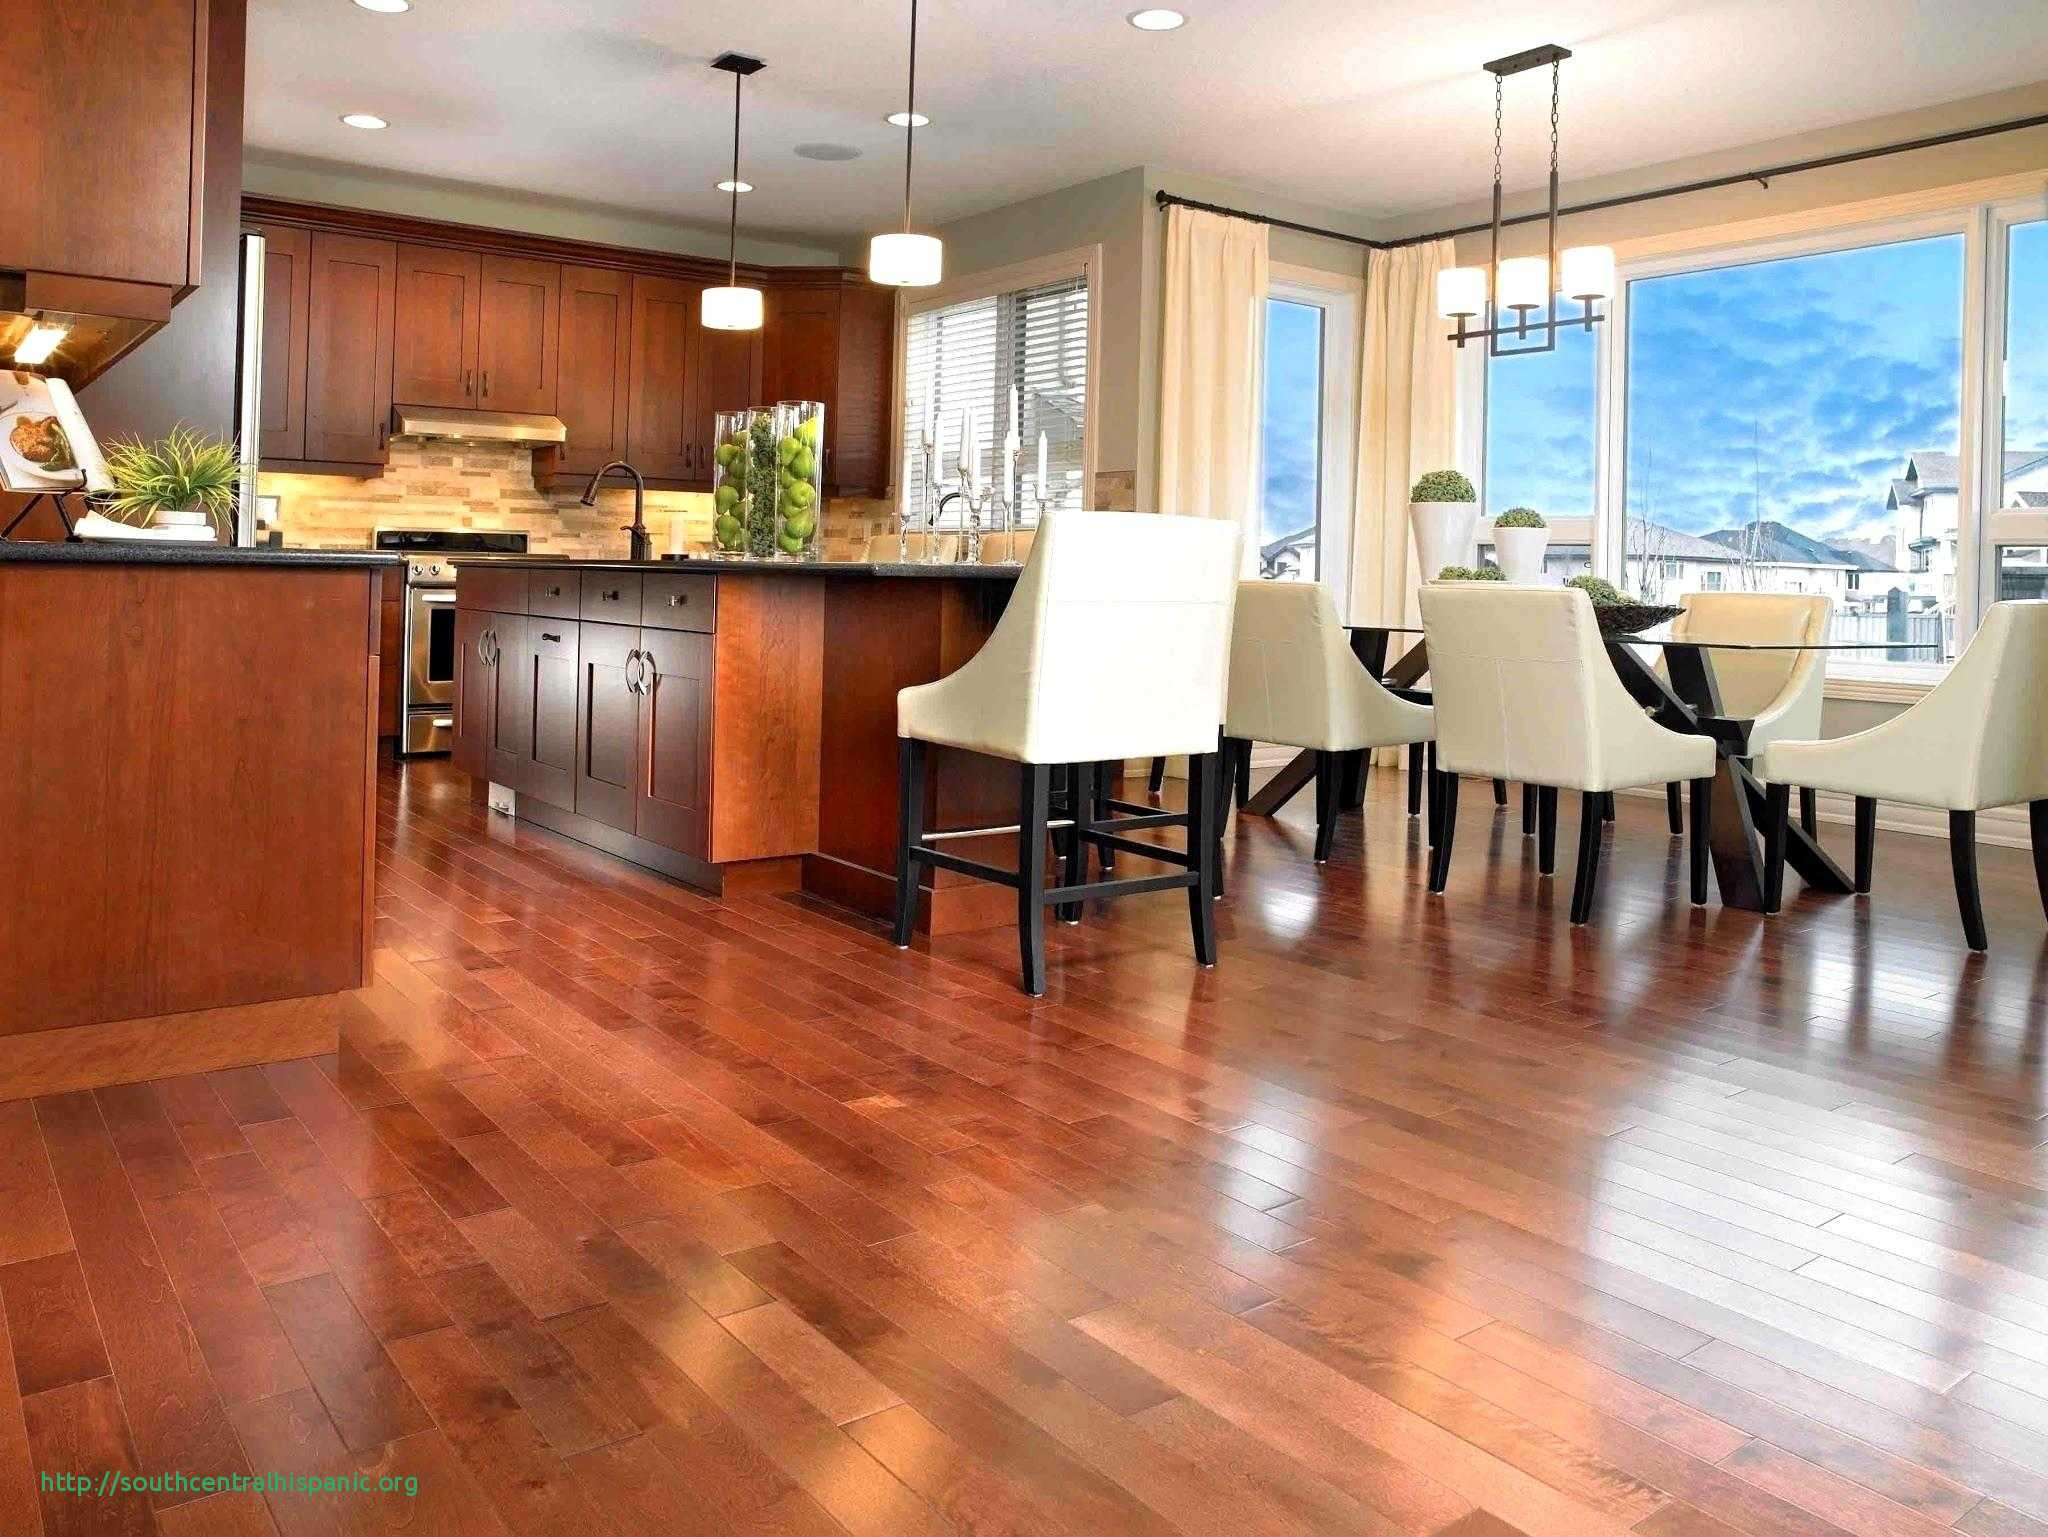 bruce hardwood floor cleaner reviews of kitchen flooring bruce hardwood kuxniya with bruce hardwood flooring company nouveau awesome kitchen design bruce hardwood floors ideas cheap hardwood